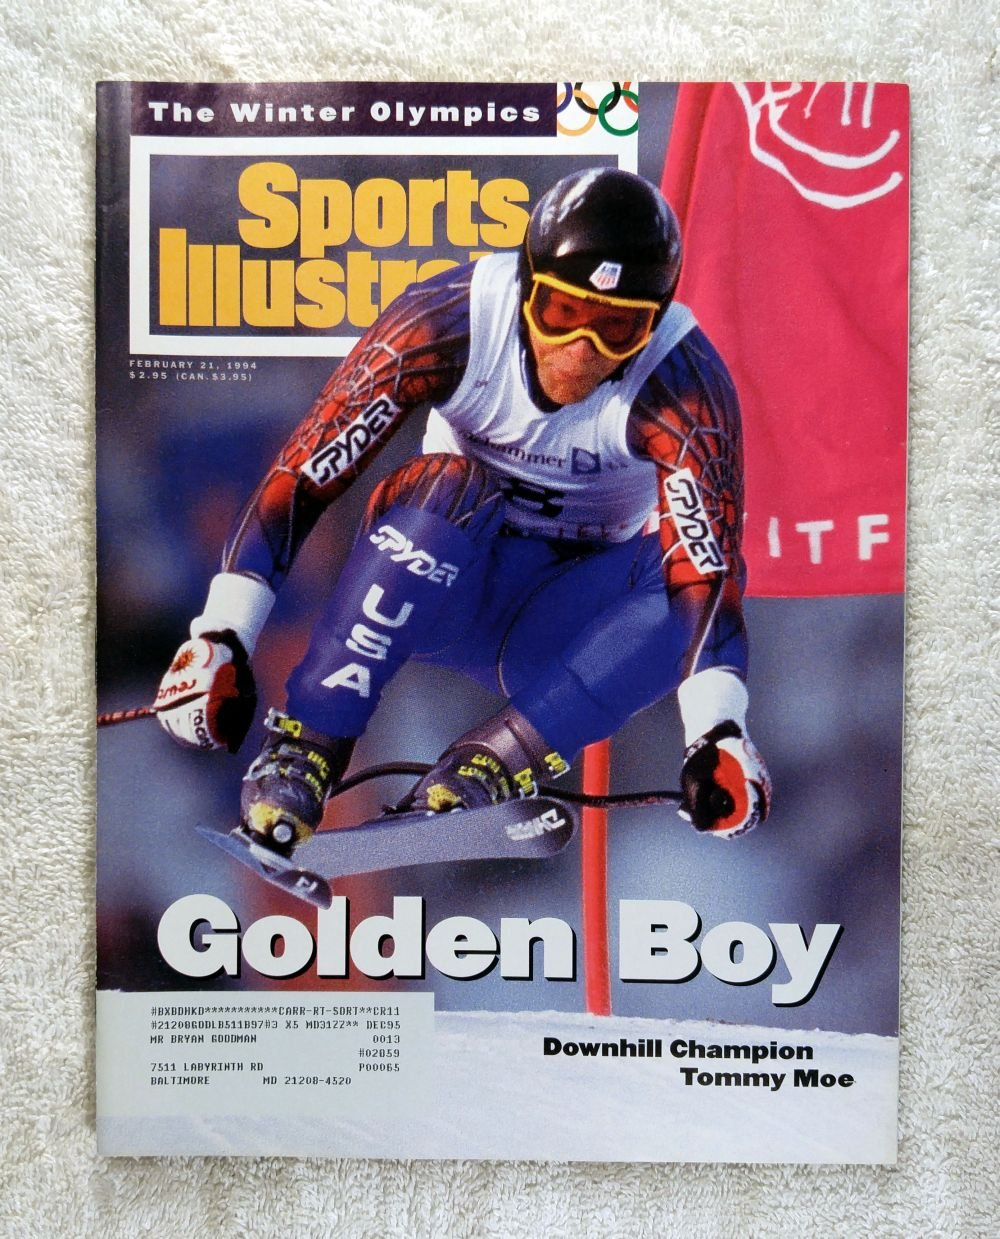 4c4a0c9281ef Tommy Moe - Downhill Skiing Gold Medal Winner - XVII Winter Olympics - Sports  Illustrated - February 21